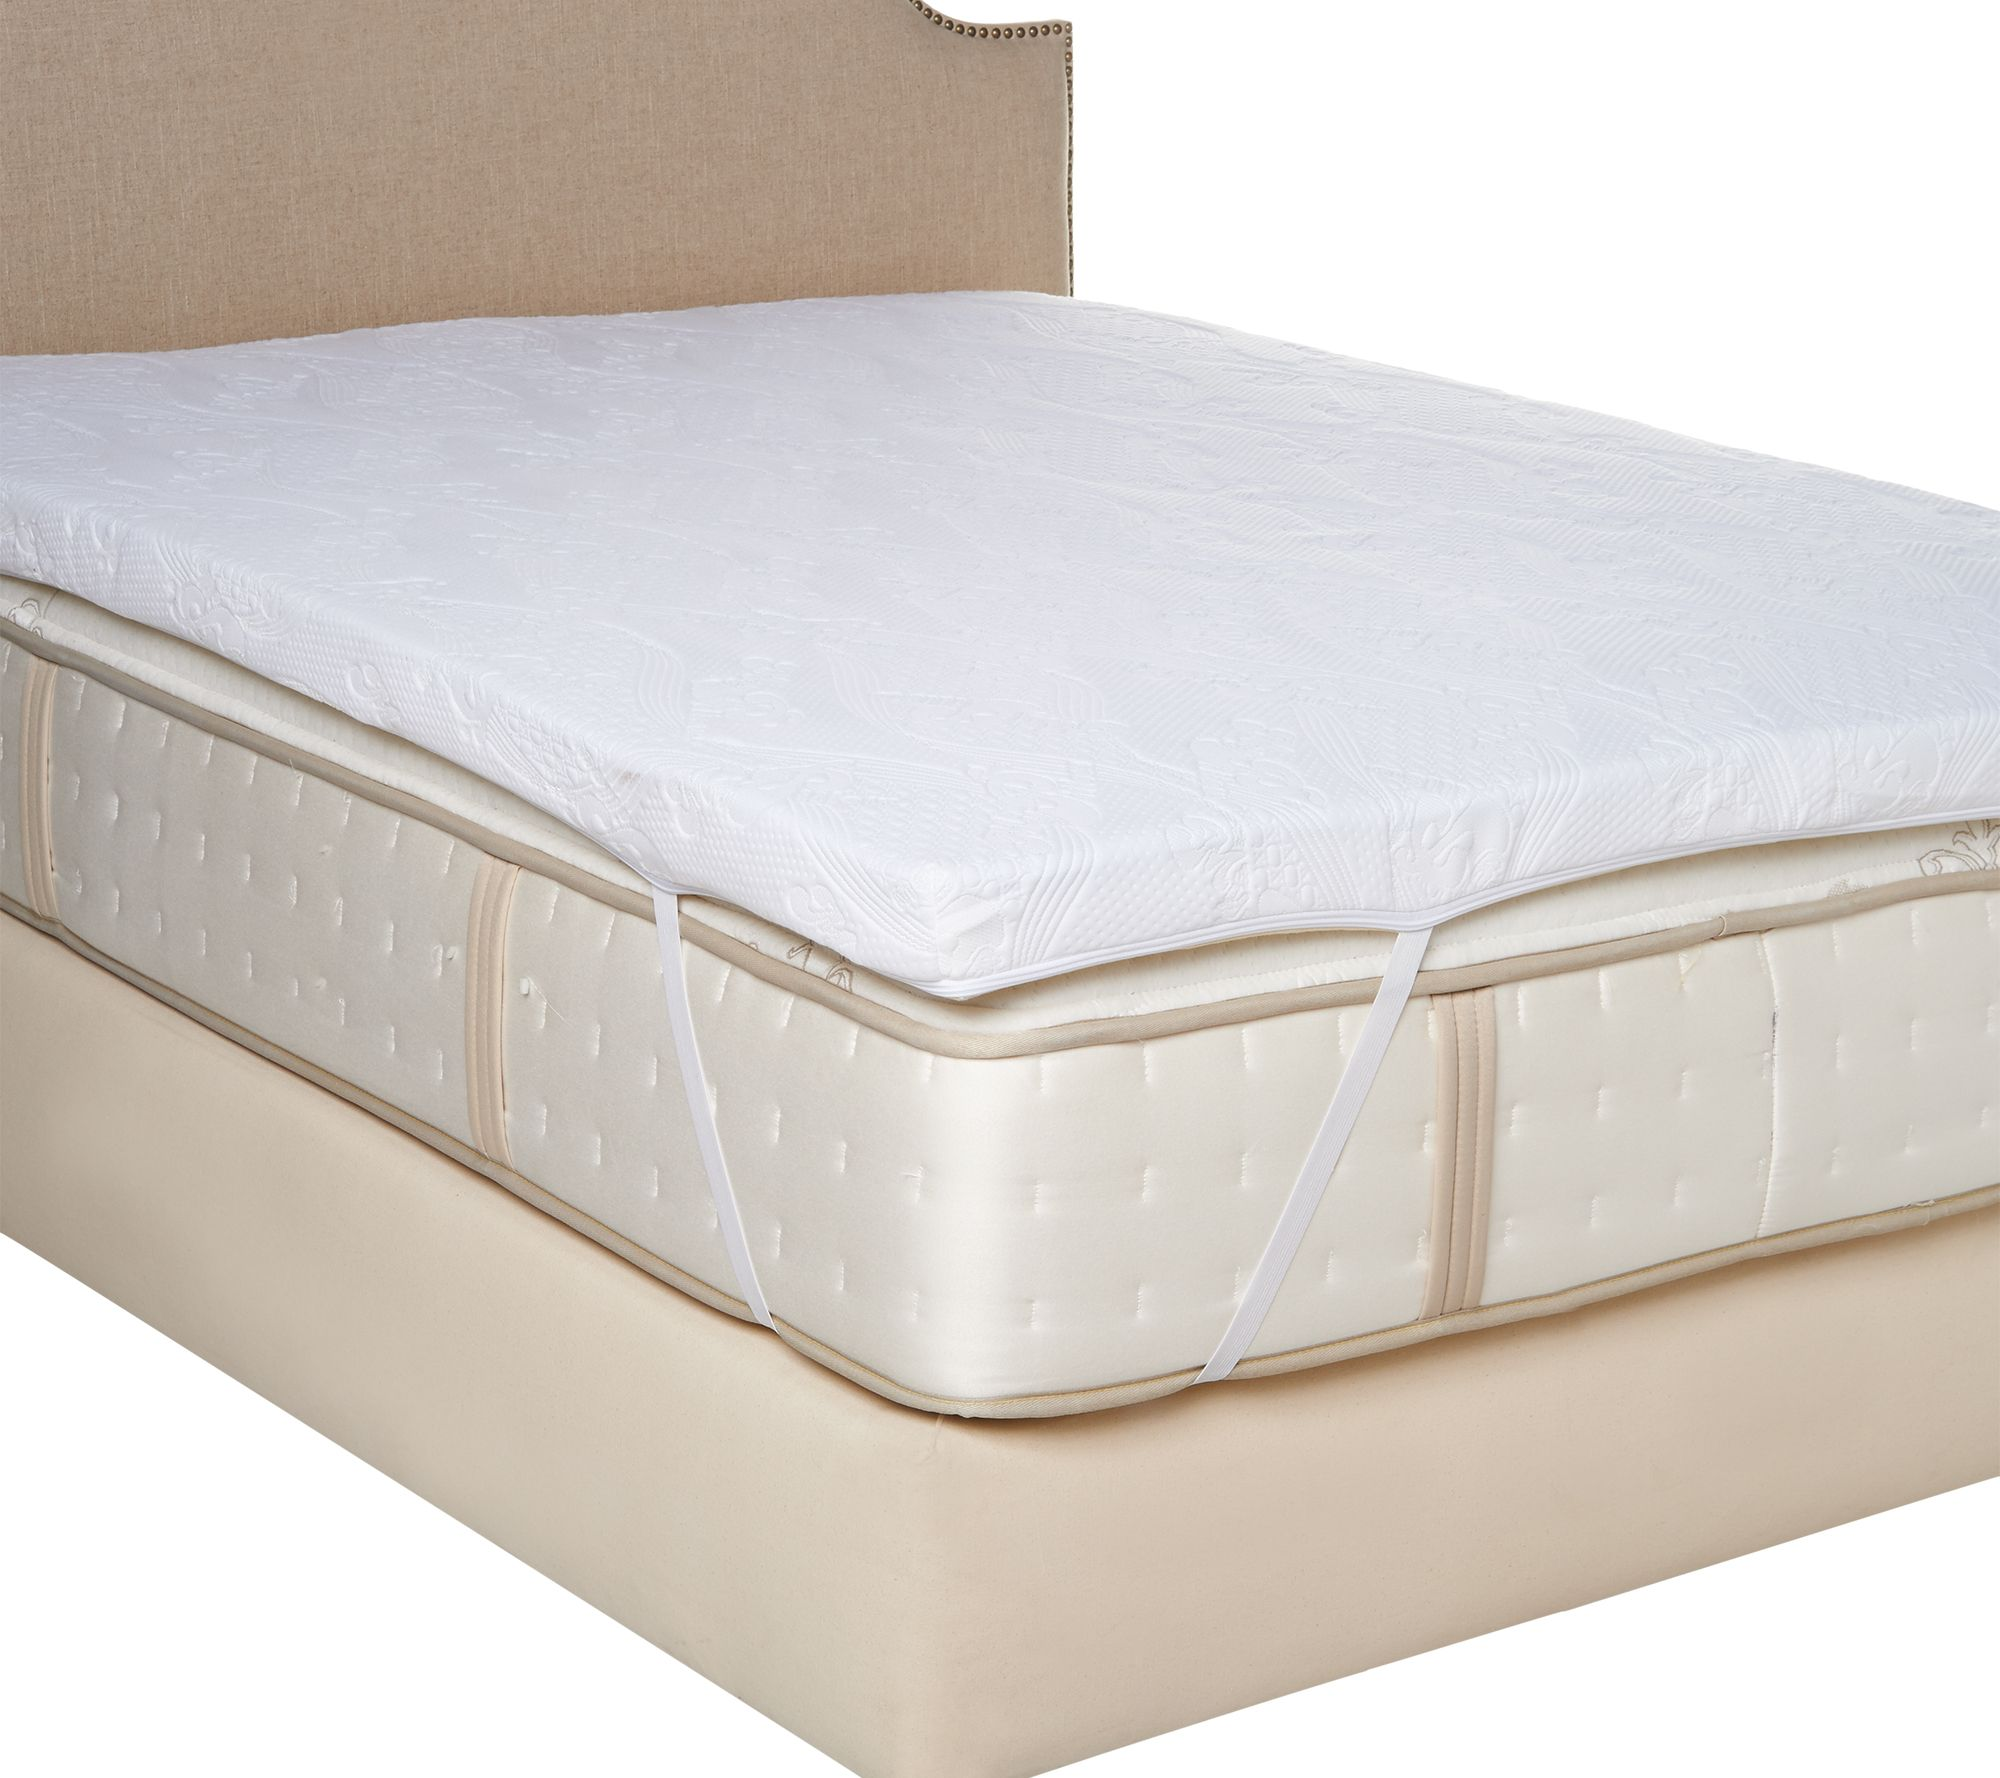 MyPillow Premium 3 TW Mattress Topper w Gel  DreamKnit